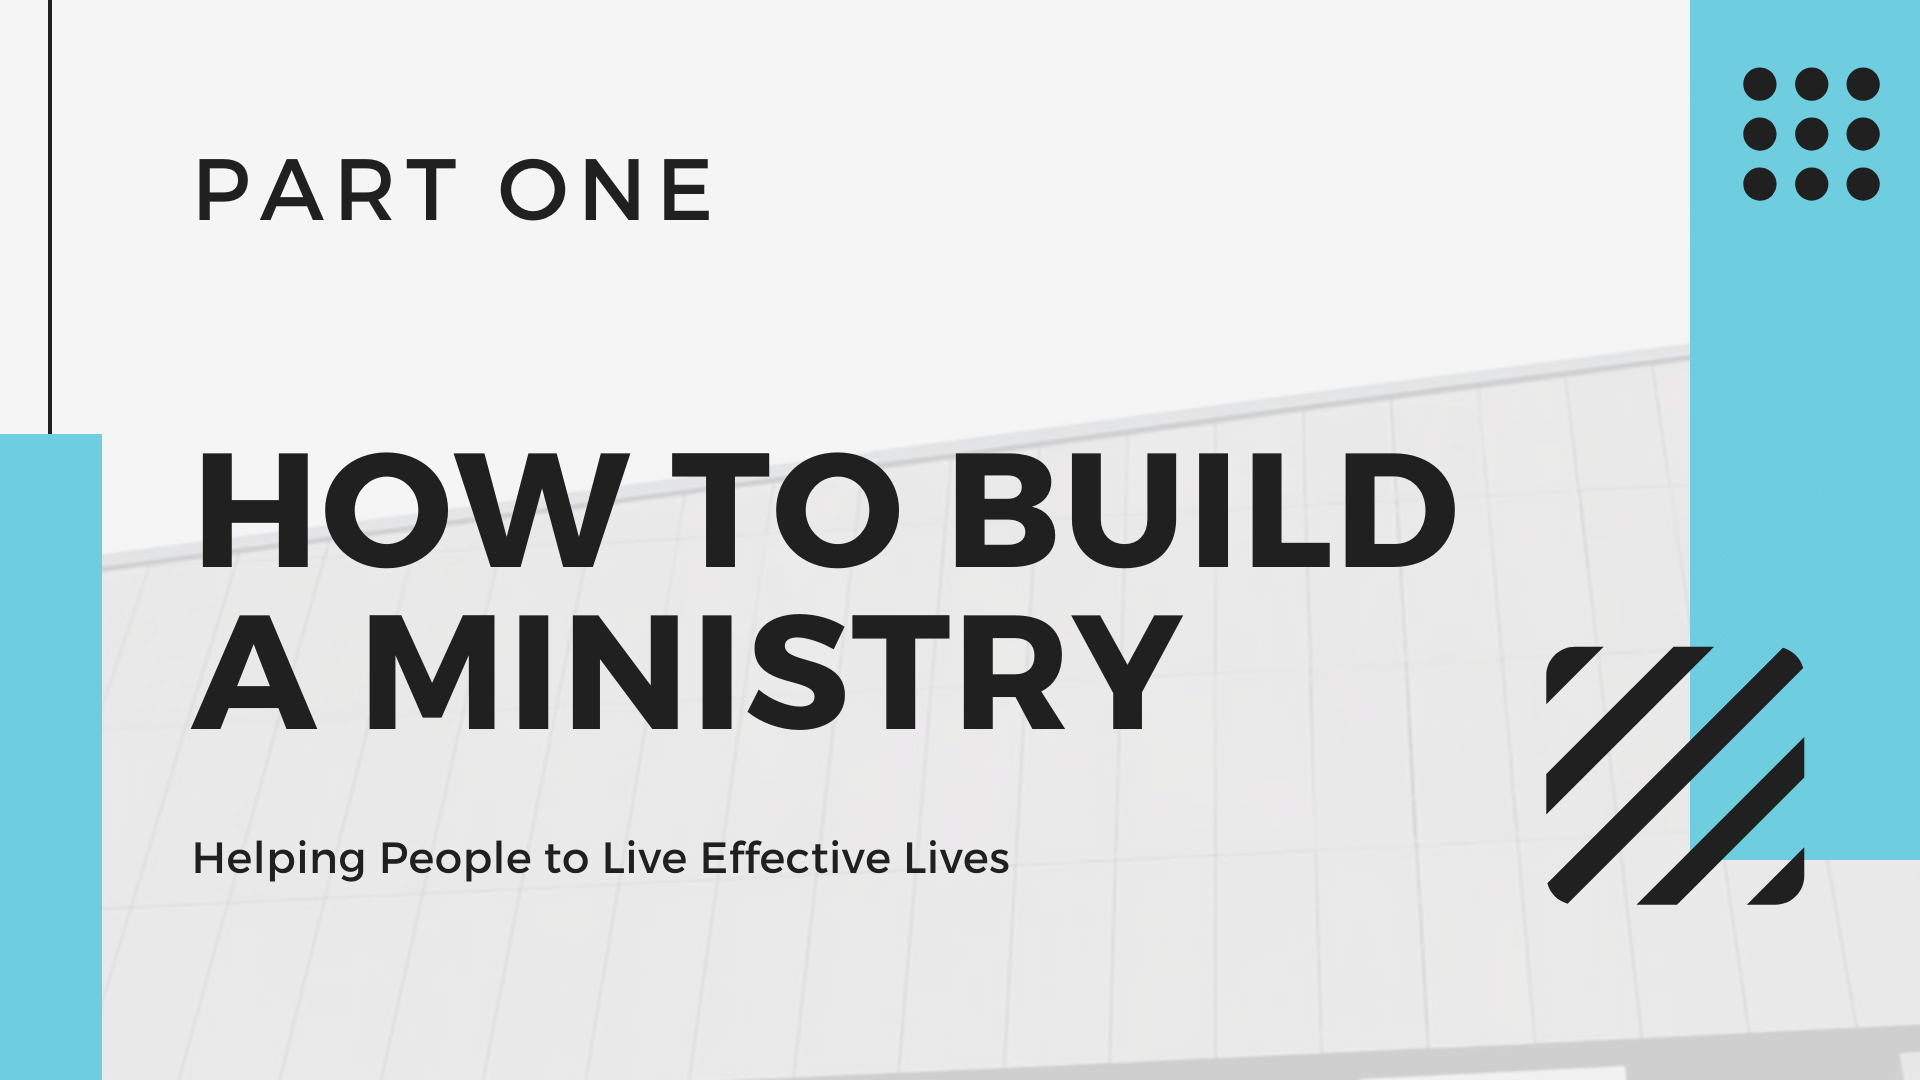 Video Channel How to Build a Ministry Part One